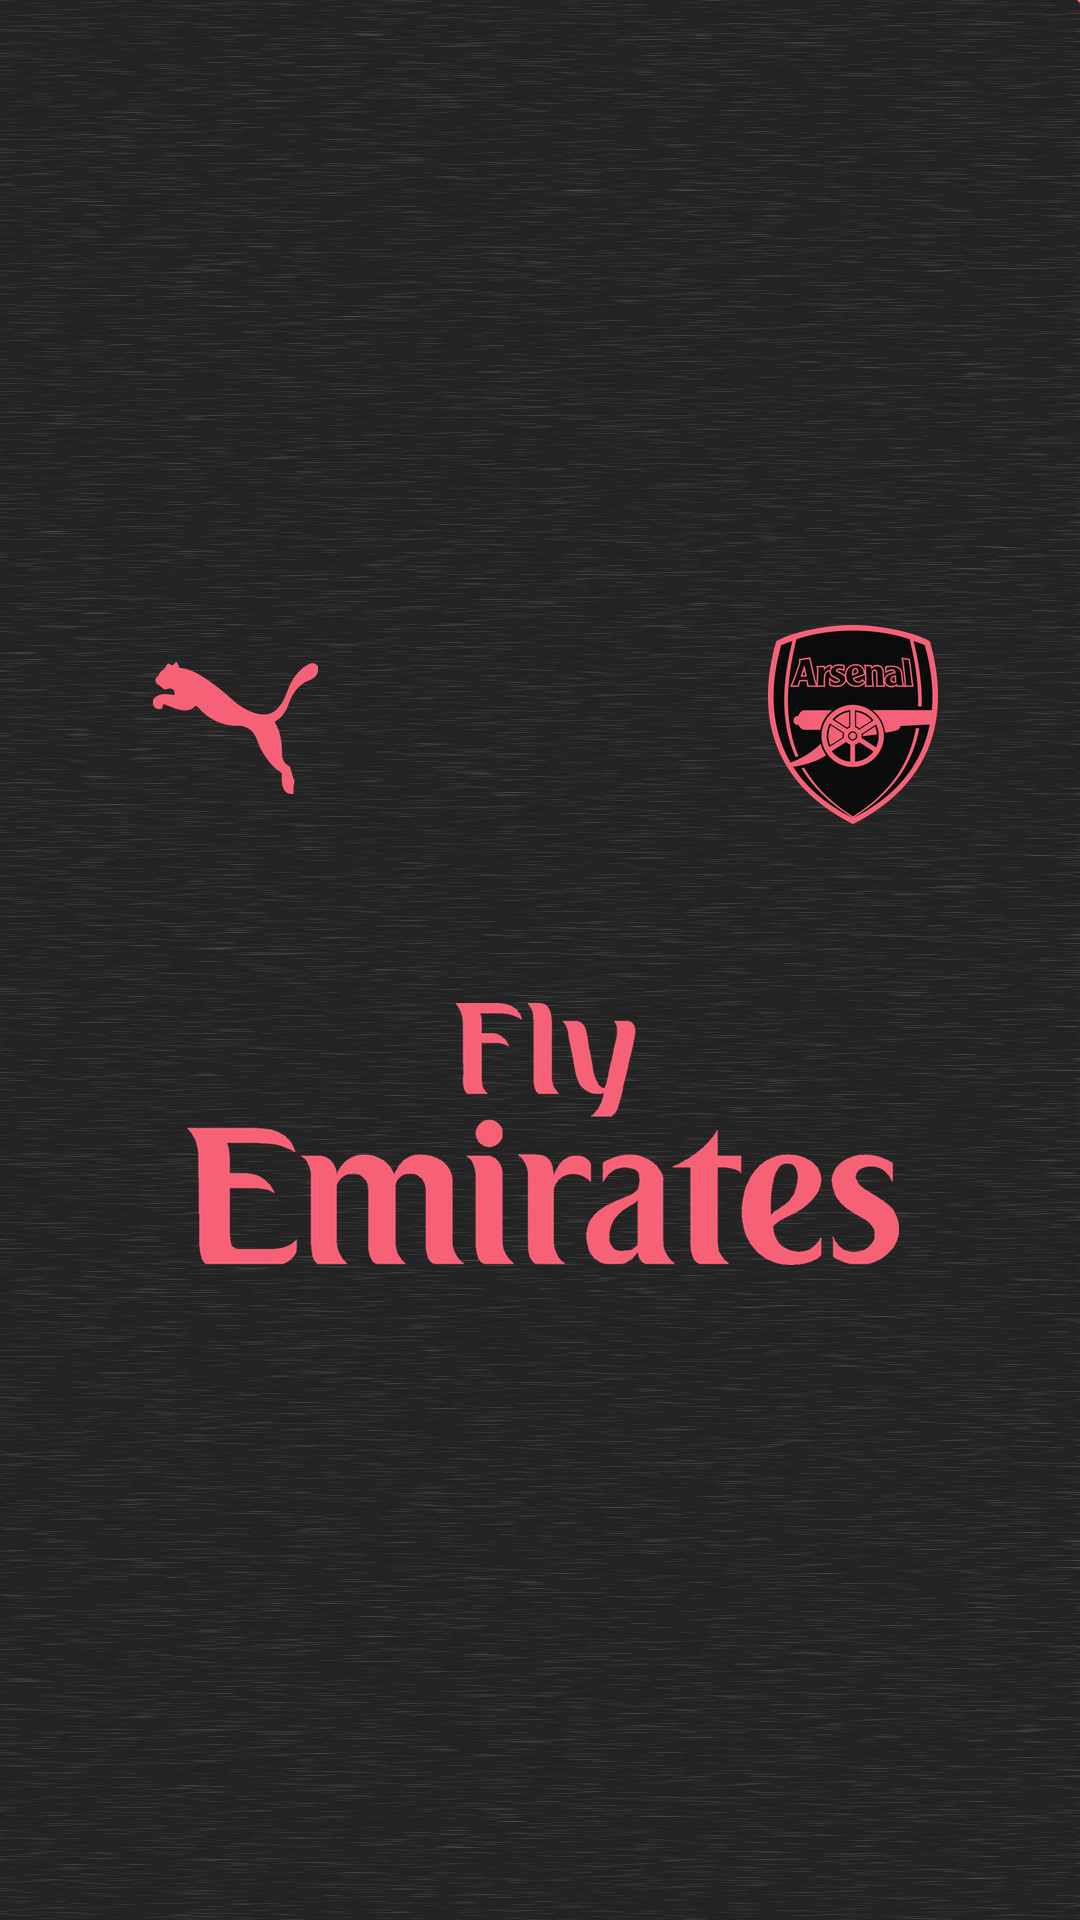 Arsenal Logo Wallpaper 2018 78 Images